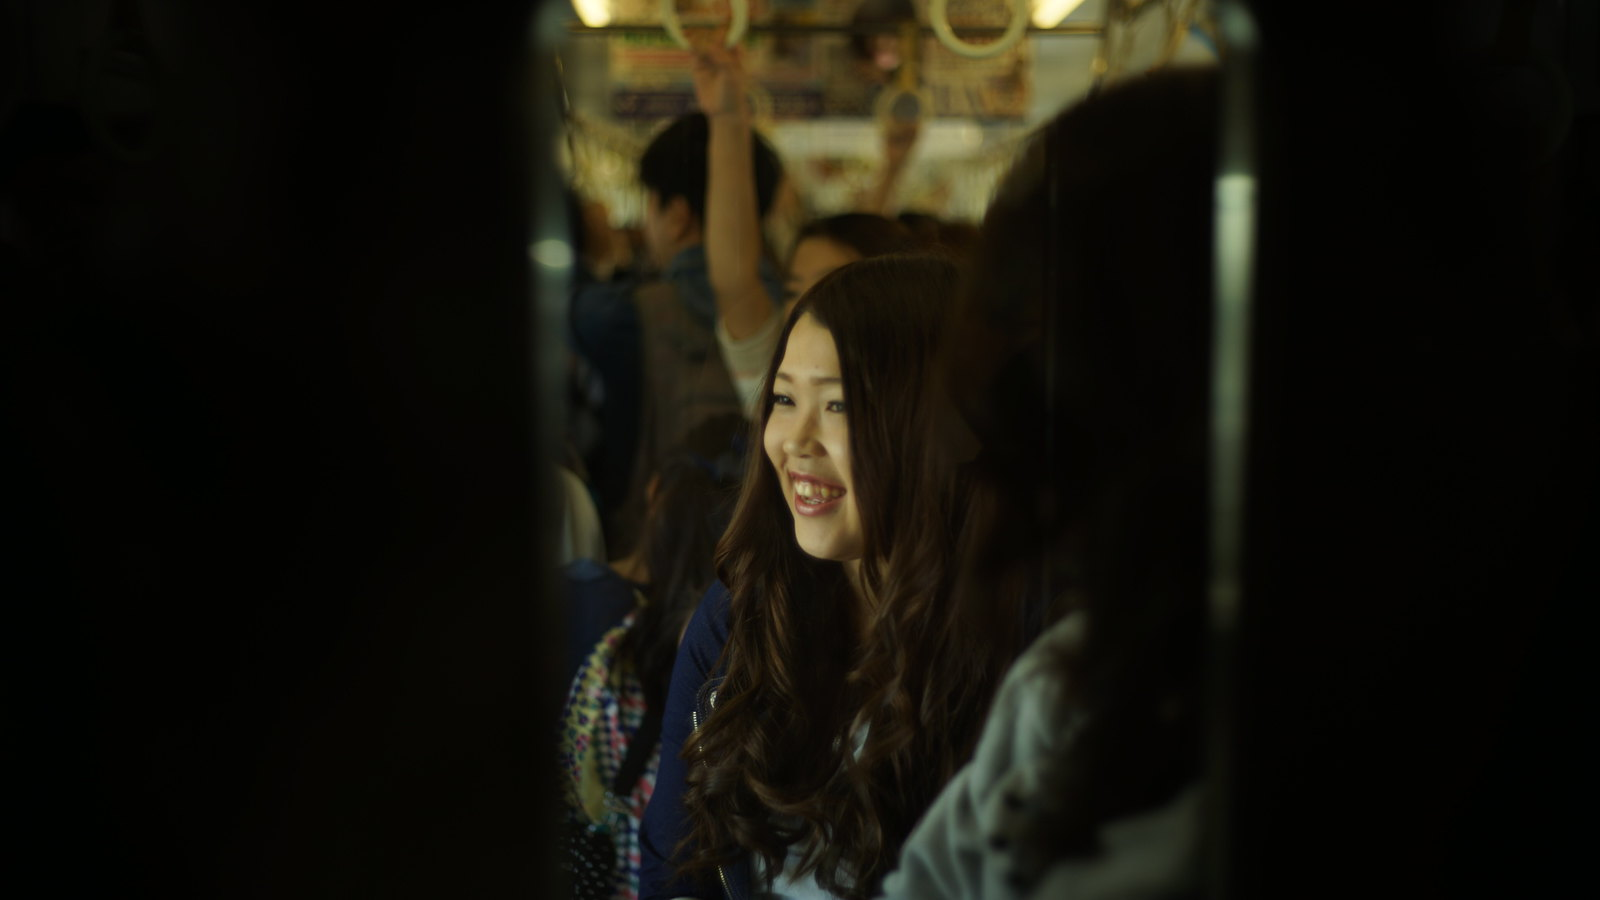 Girl in the next carriage. #foto #japan15 #SonyA7 #Voigtlander40mm #Kyoto